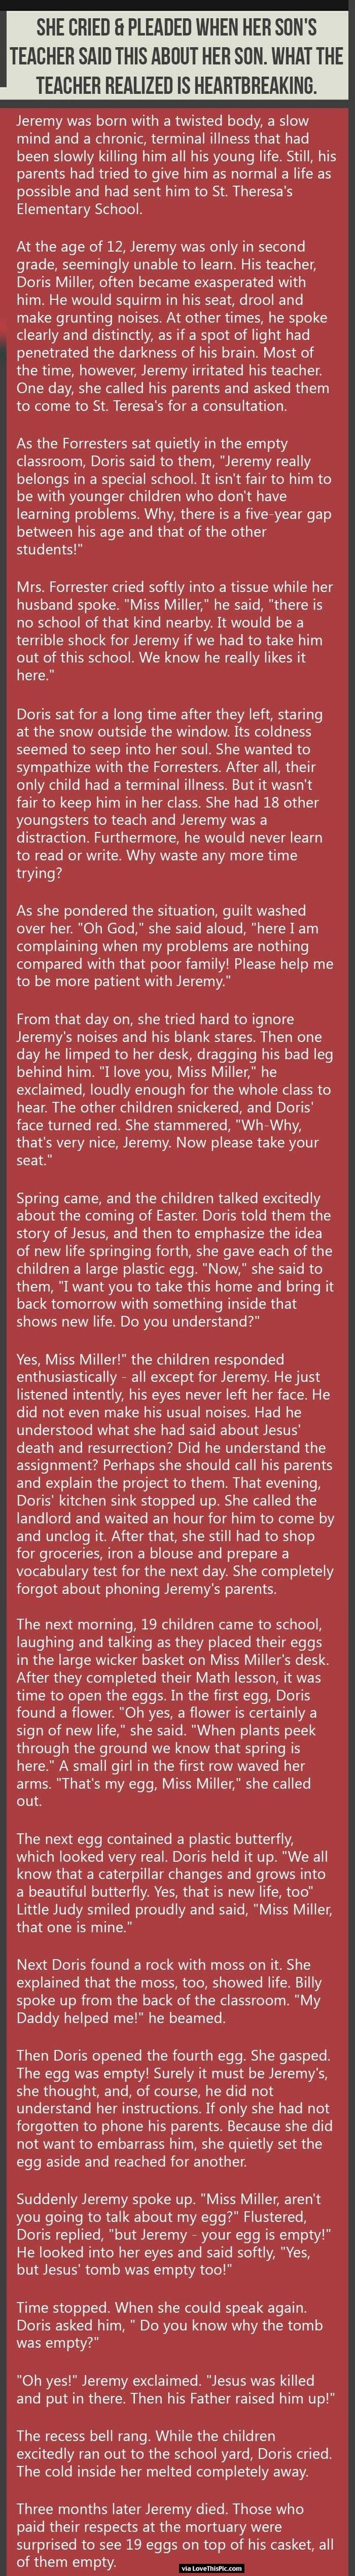 What an amazing story!